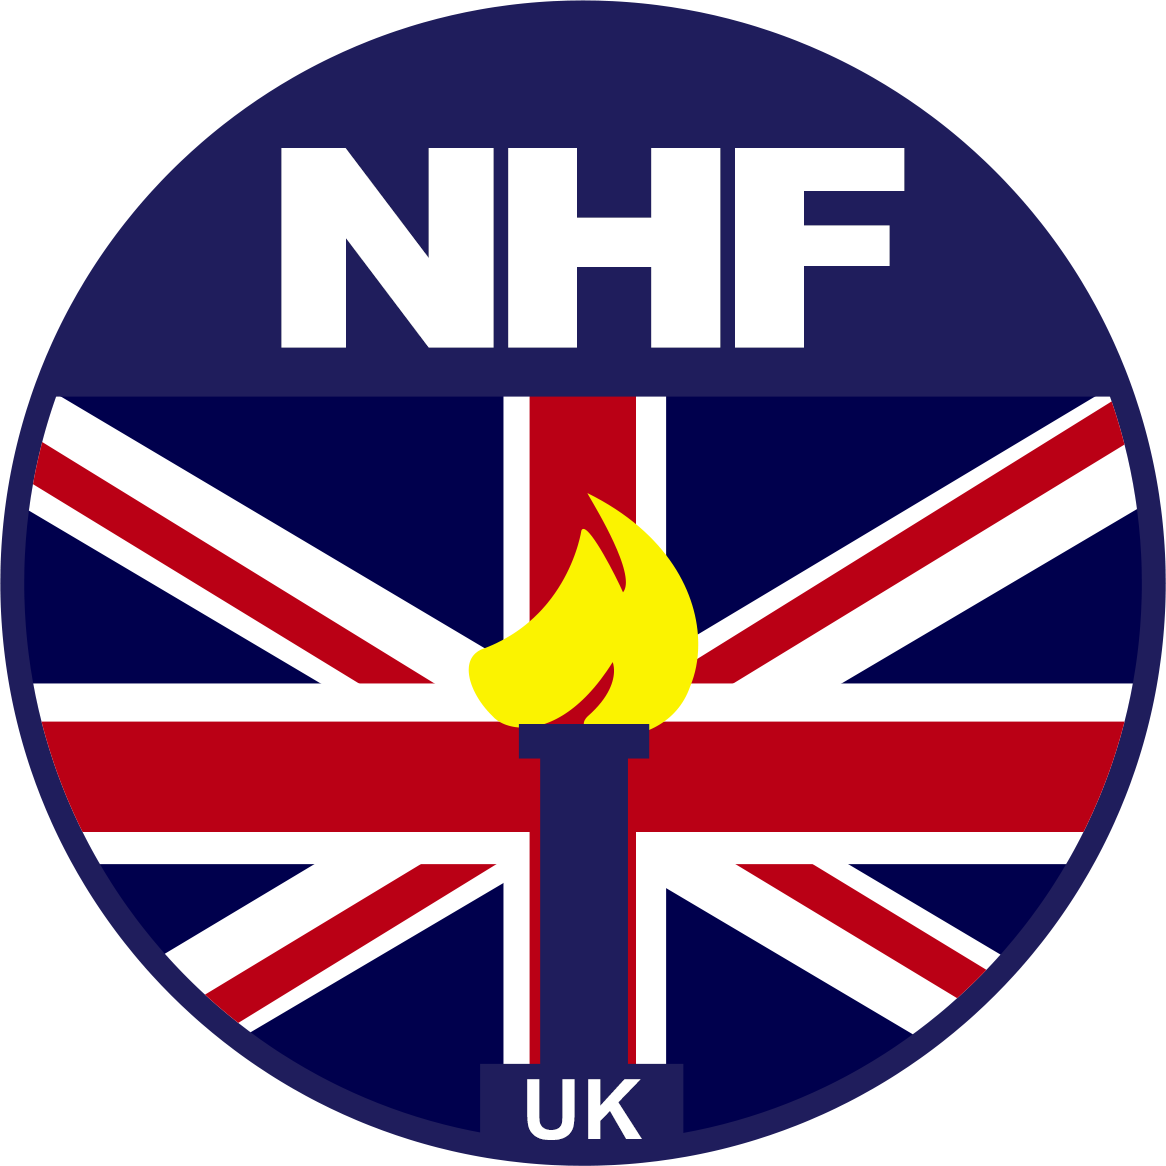 The National Health Federation - UK